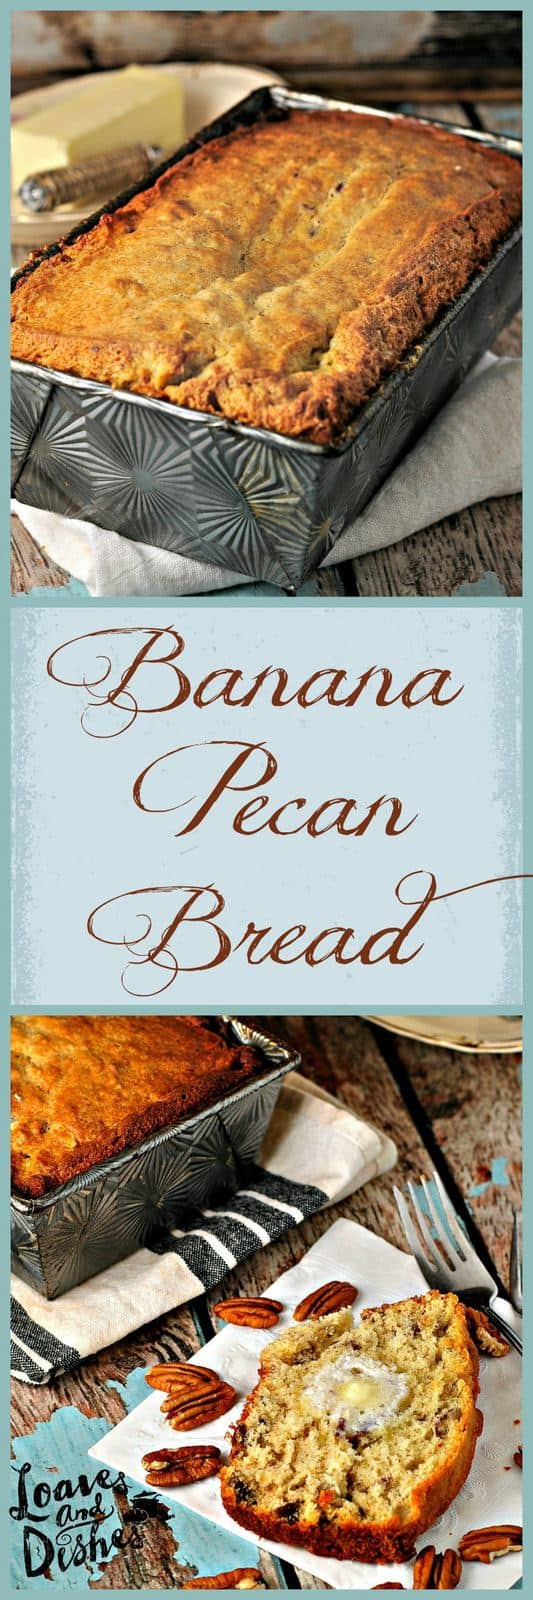 Banana pecan bread loaves and dishes hot banana pecan bread with warm butter yum easy recipe using old spotty forumfinder Gallery